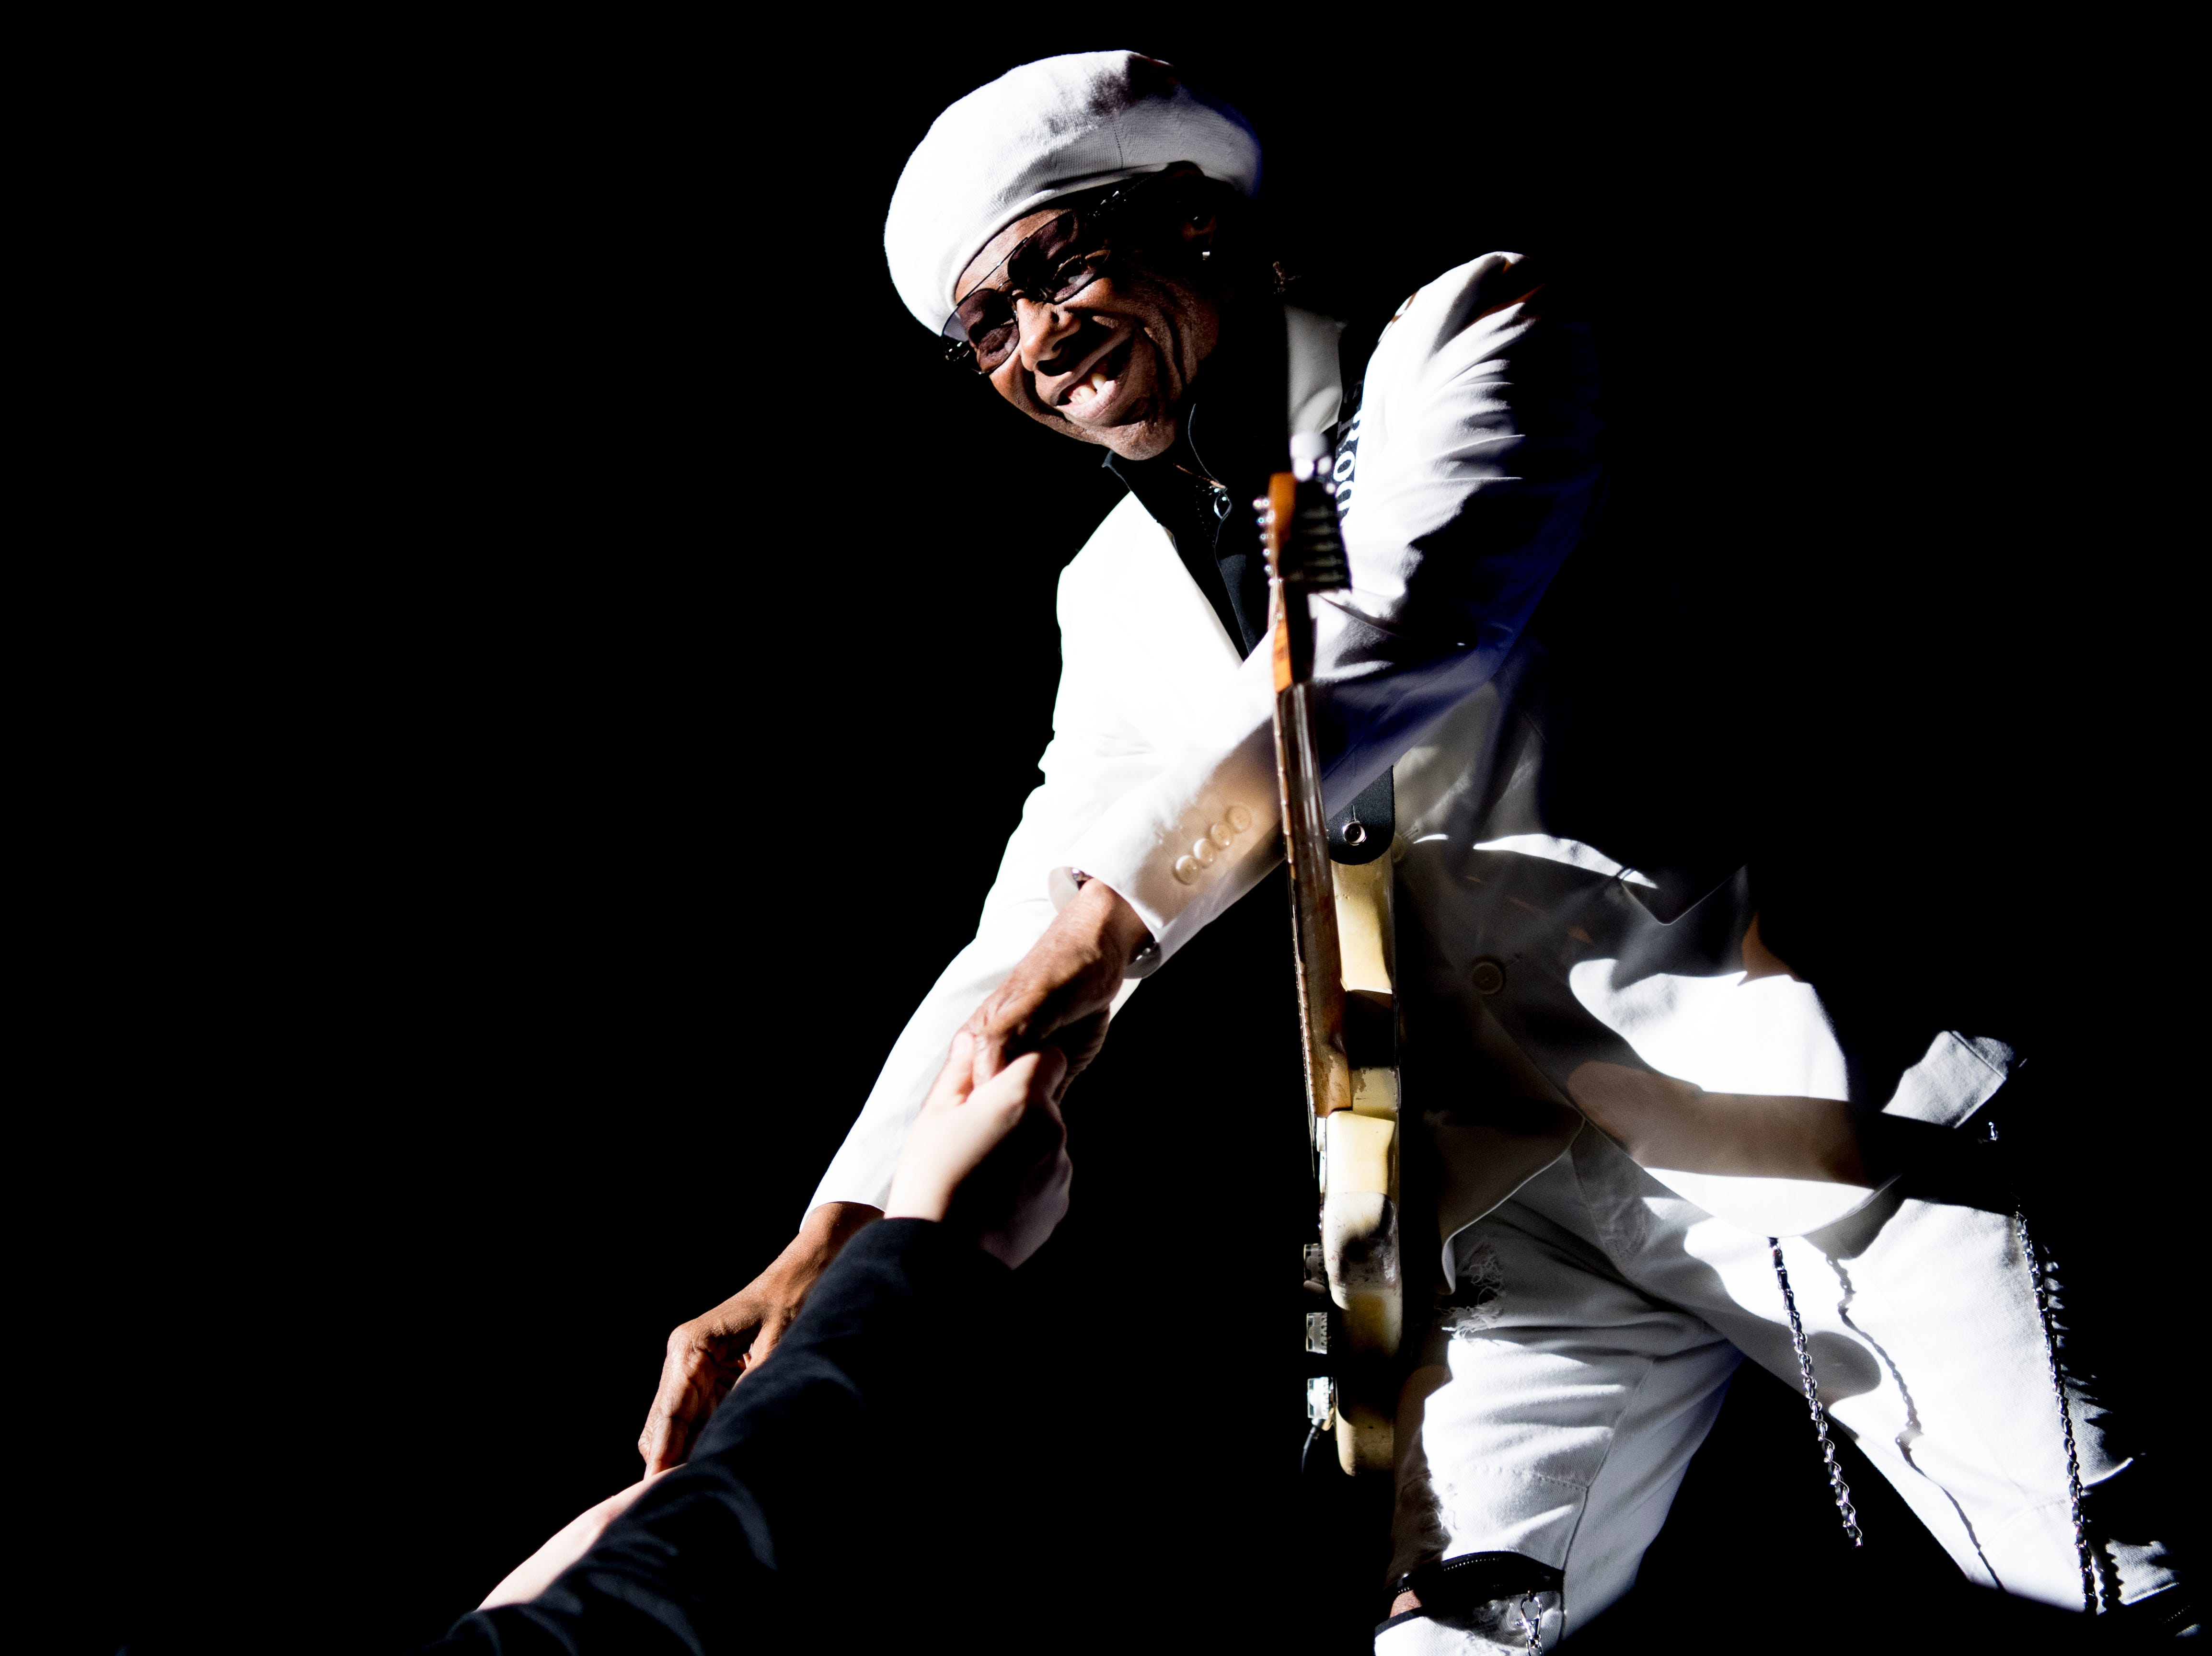 Nile Rodgers performs at the Tennessee Theatre in Knoxville, Tennessee on Wednesday, January 30, 2019.